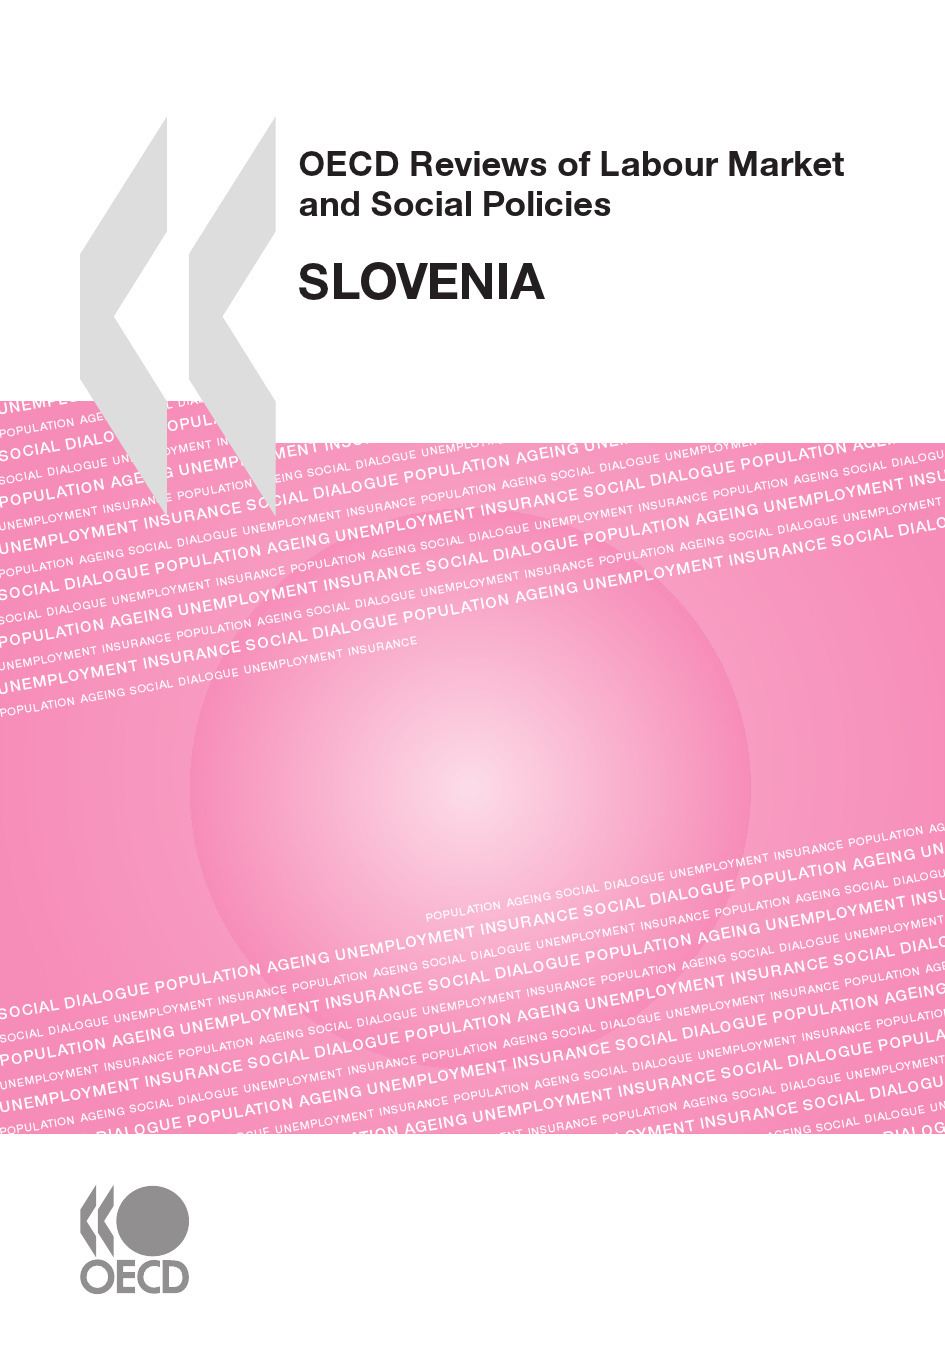 Collective OECD Reviews of Labour Market and Social Policies: Slovenia 2009